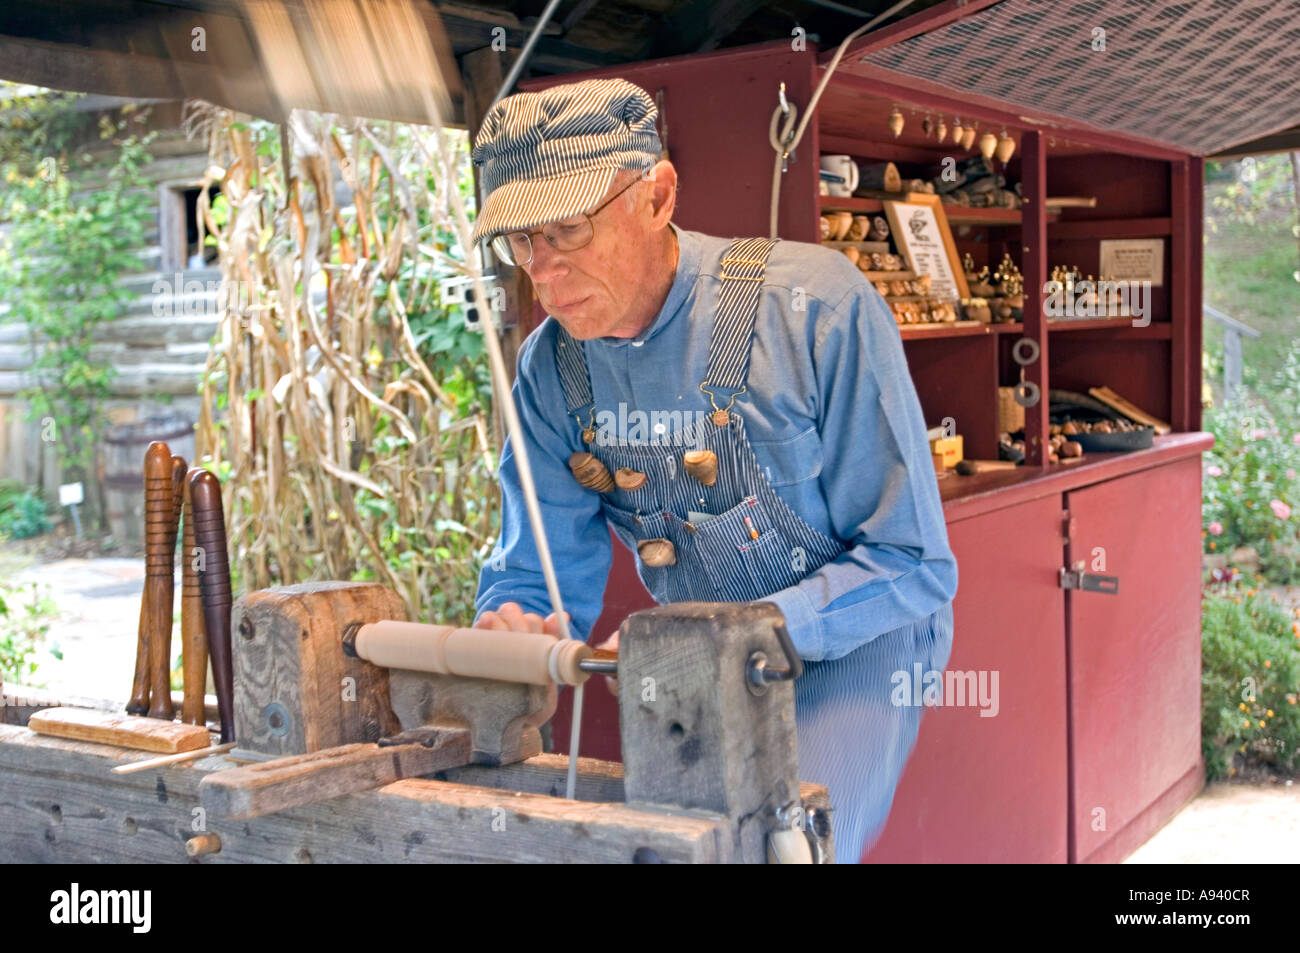 Woodworker in the Crafts Village at the Ozark Folk Center State Park in Mountain View AR - Stock Image